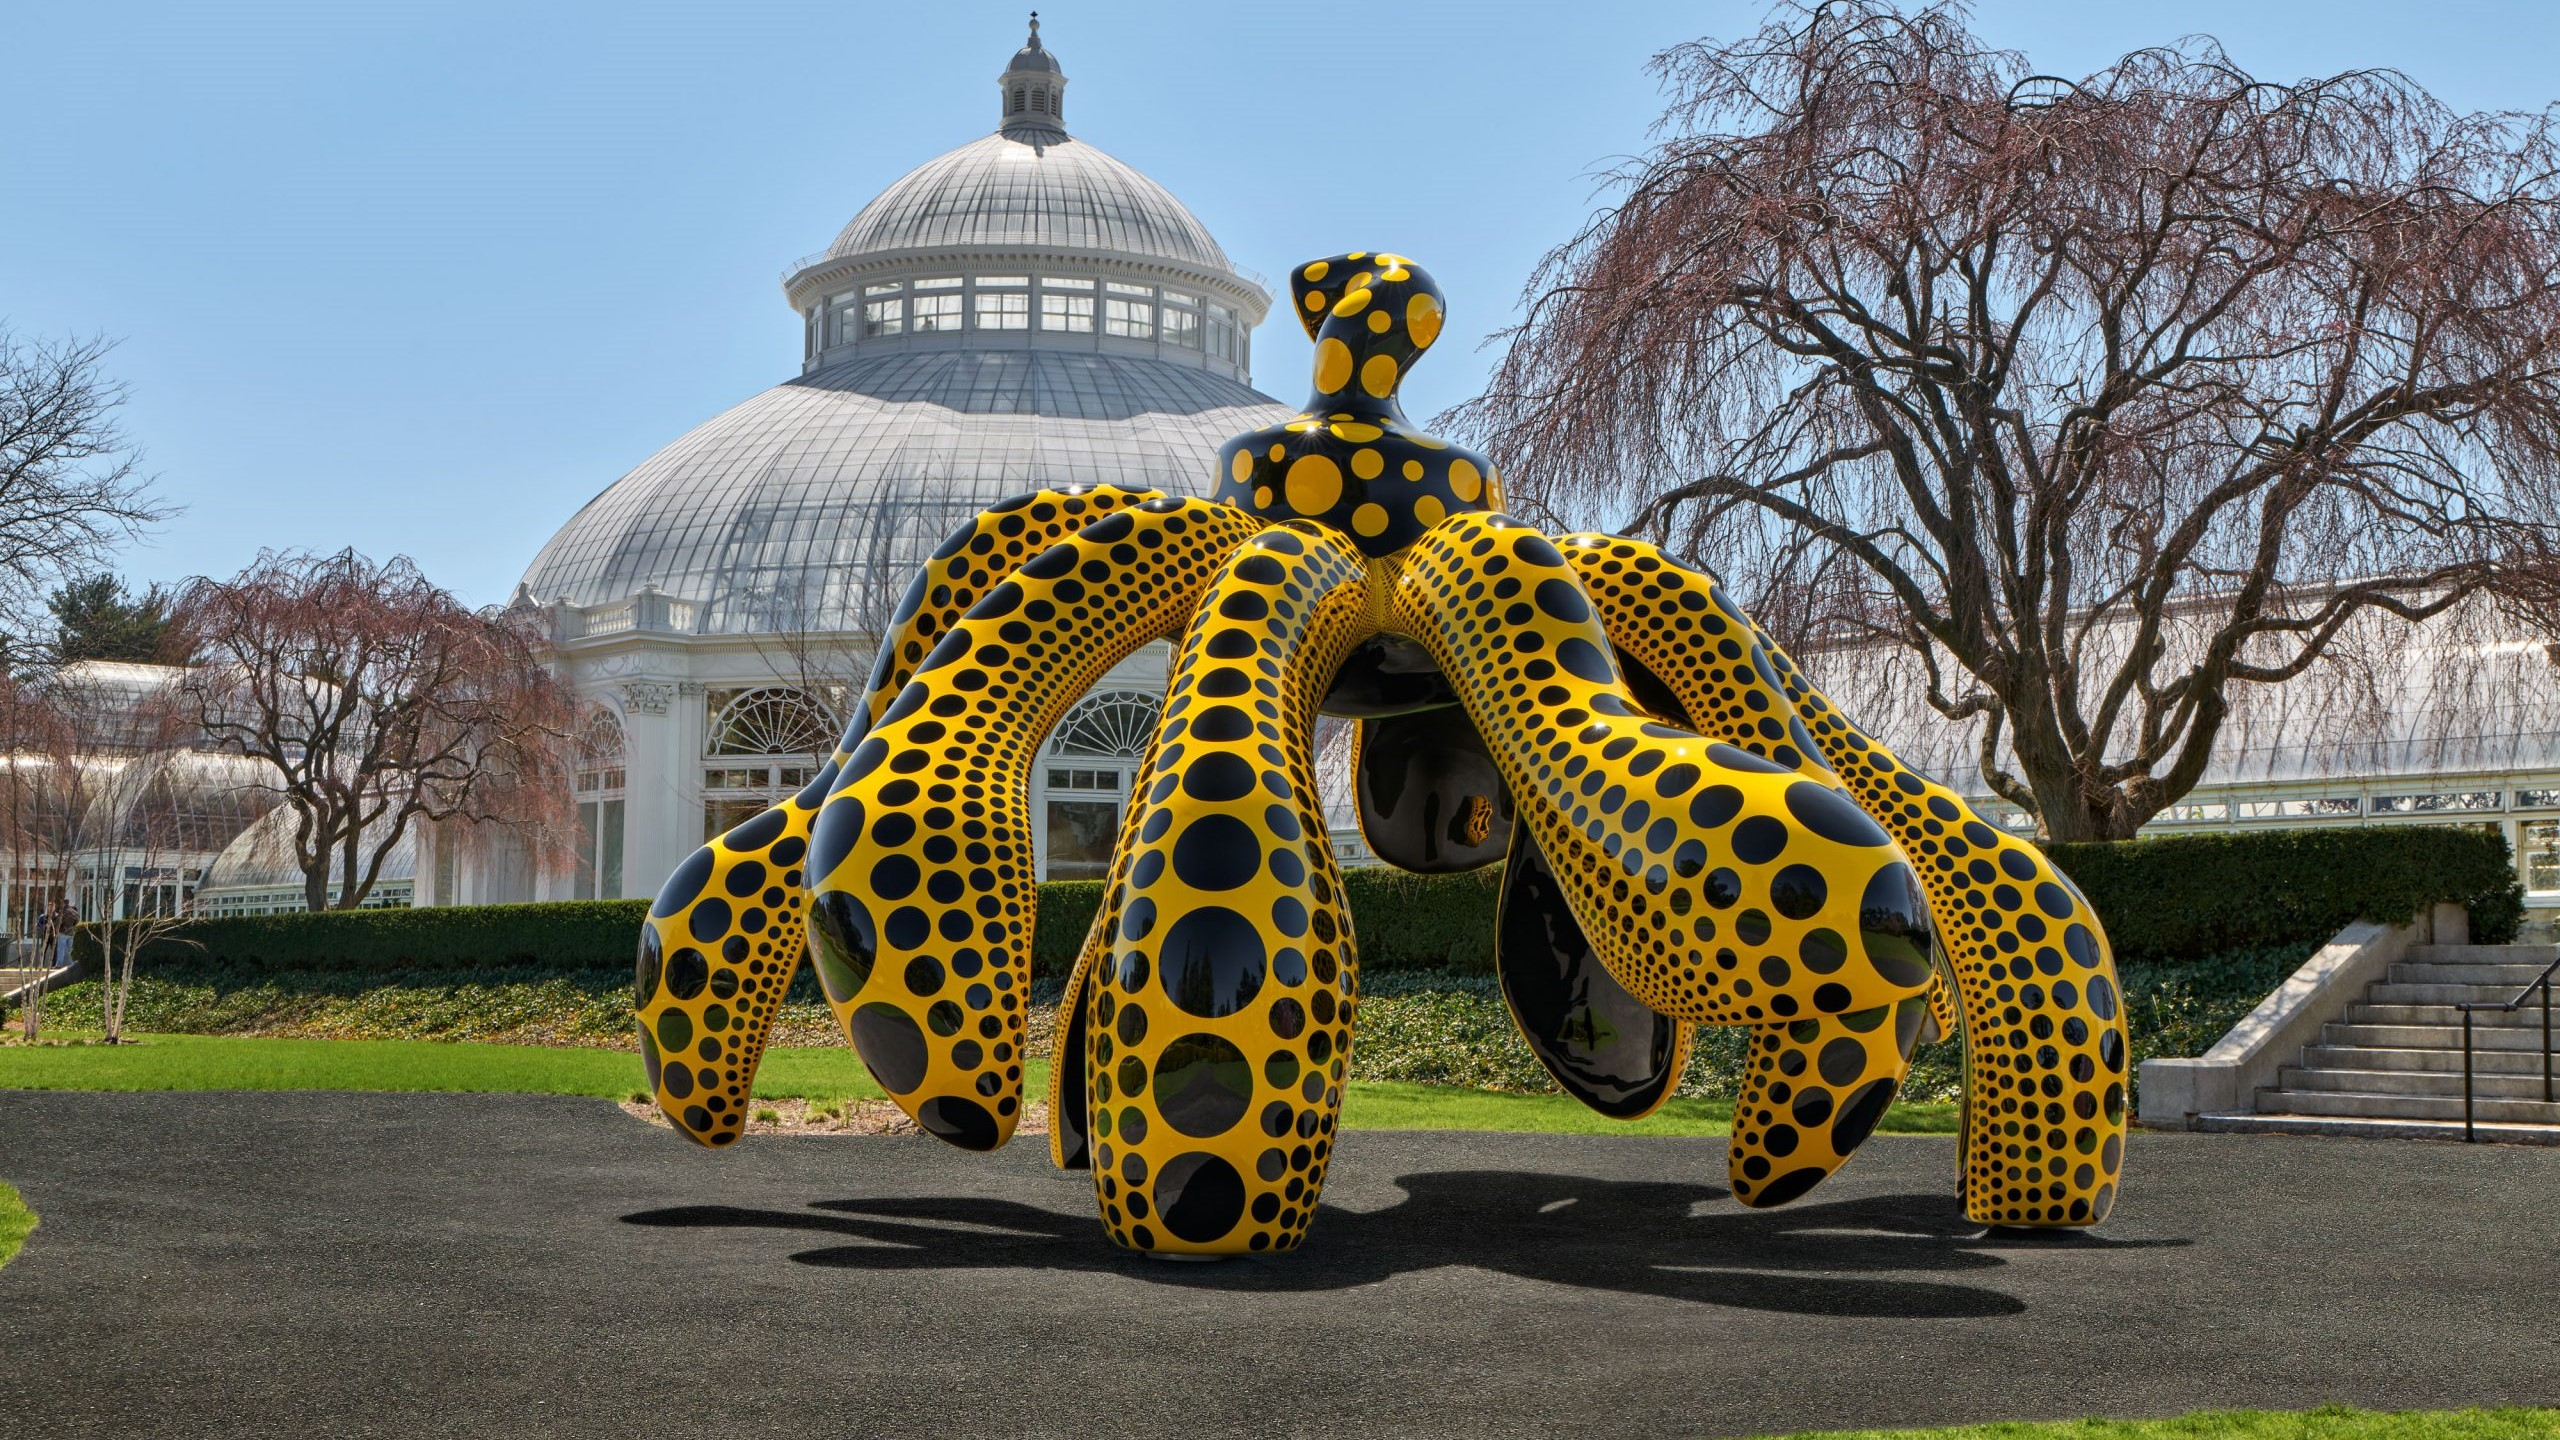 Image of the bright yellow and black dotted Dancing Pumpkin sculpture by Kusama